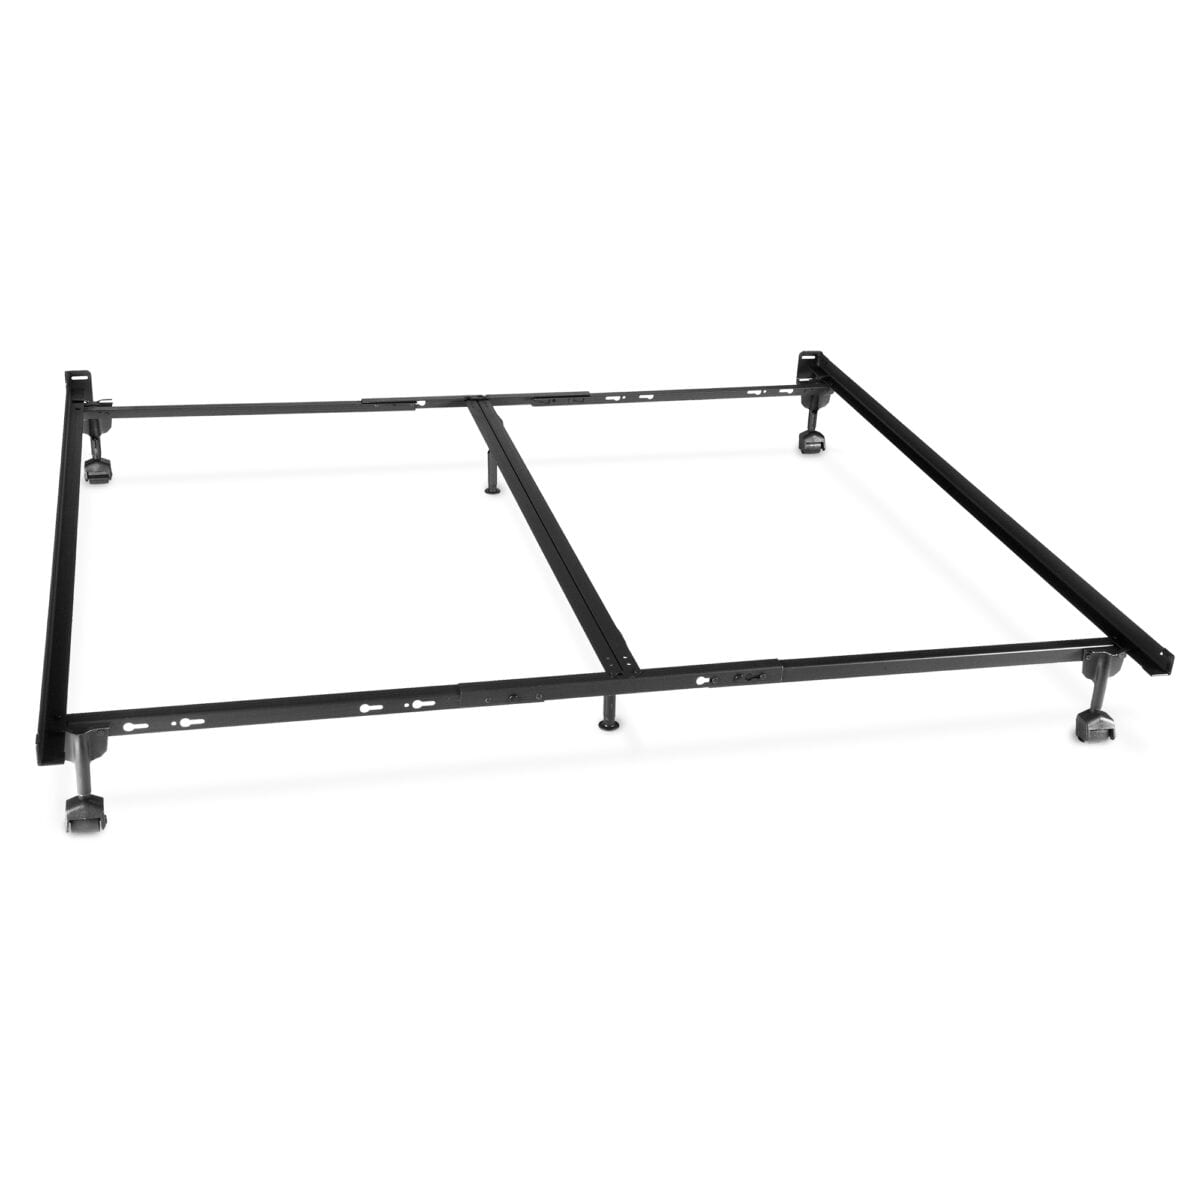 Image of Advantage Steel Bed Frame with Rug Rollers